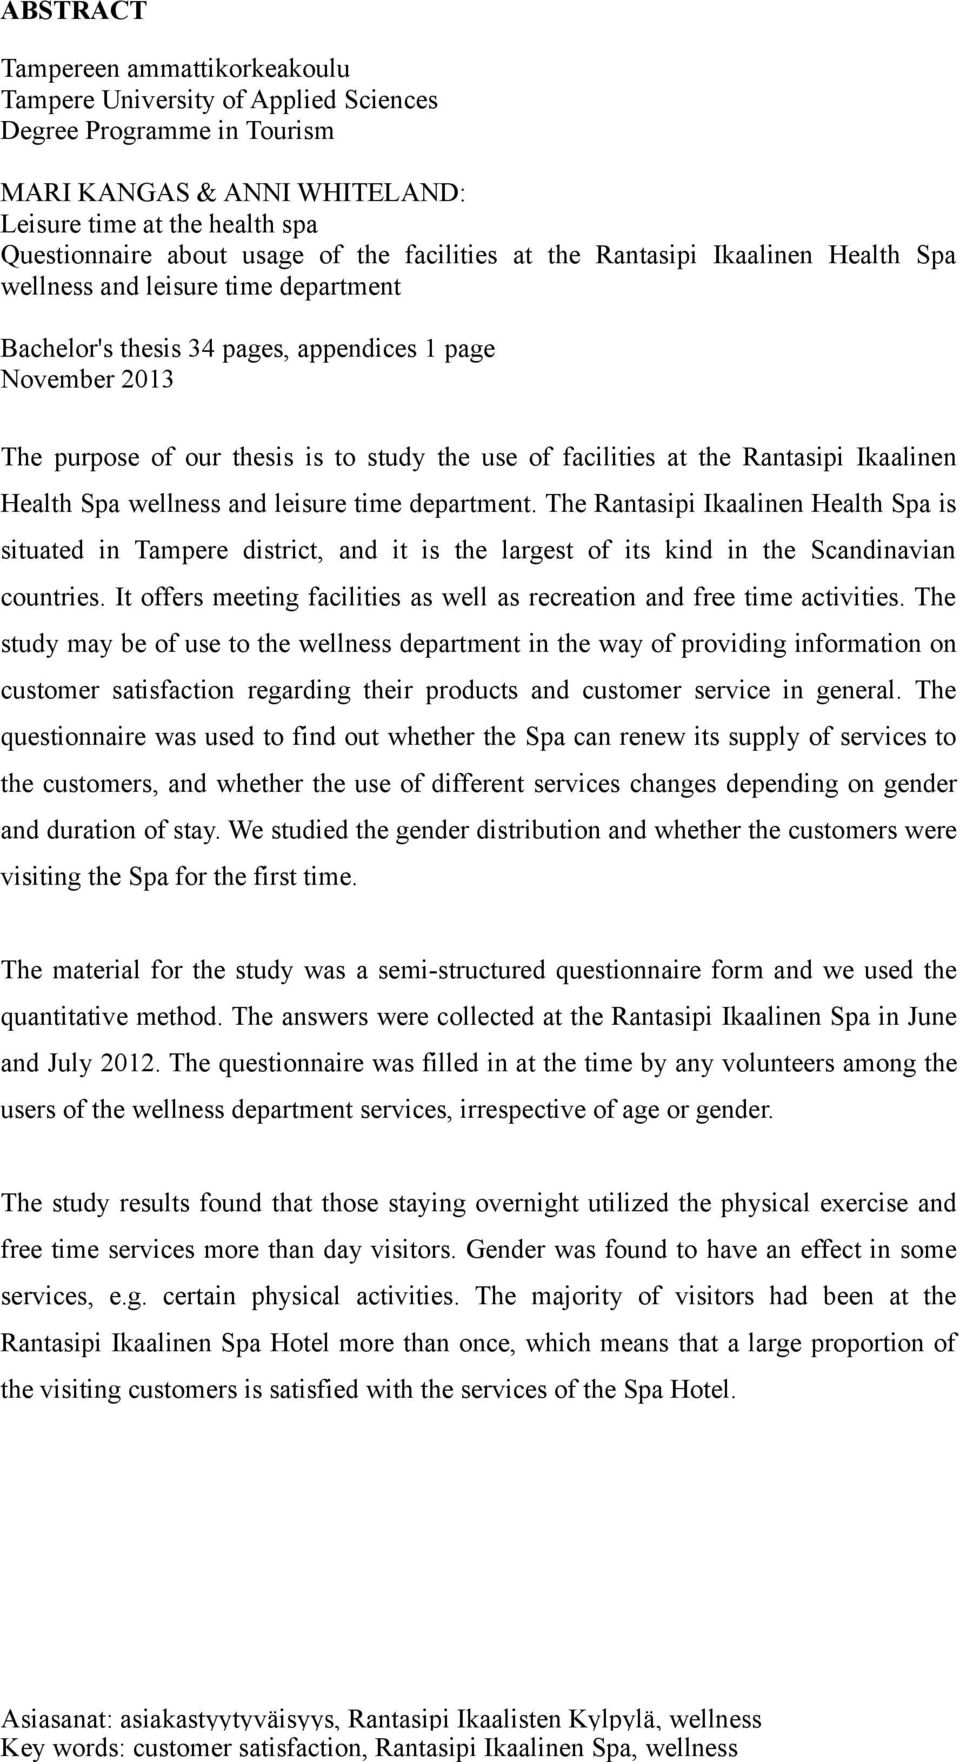 and leisure time department Bachelor's thesis 34 pages, appendices 1 page November 2013 The purpose of our thesis is to study the use of facilities at the Rantasipi Ikaalinen Health Spa wellness and